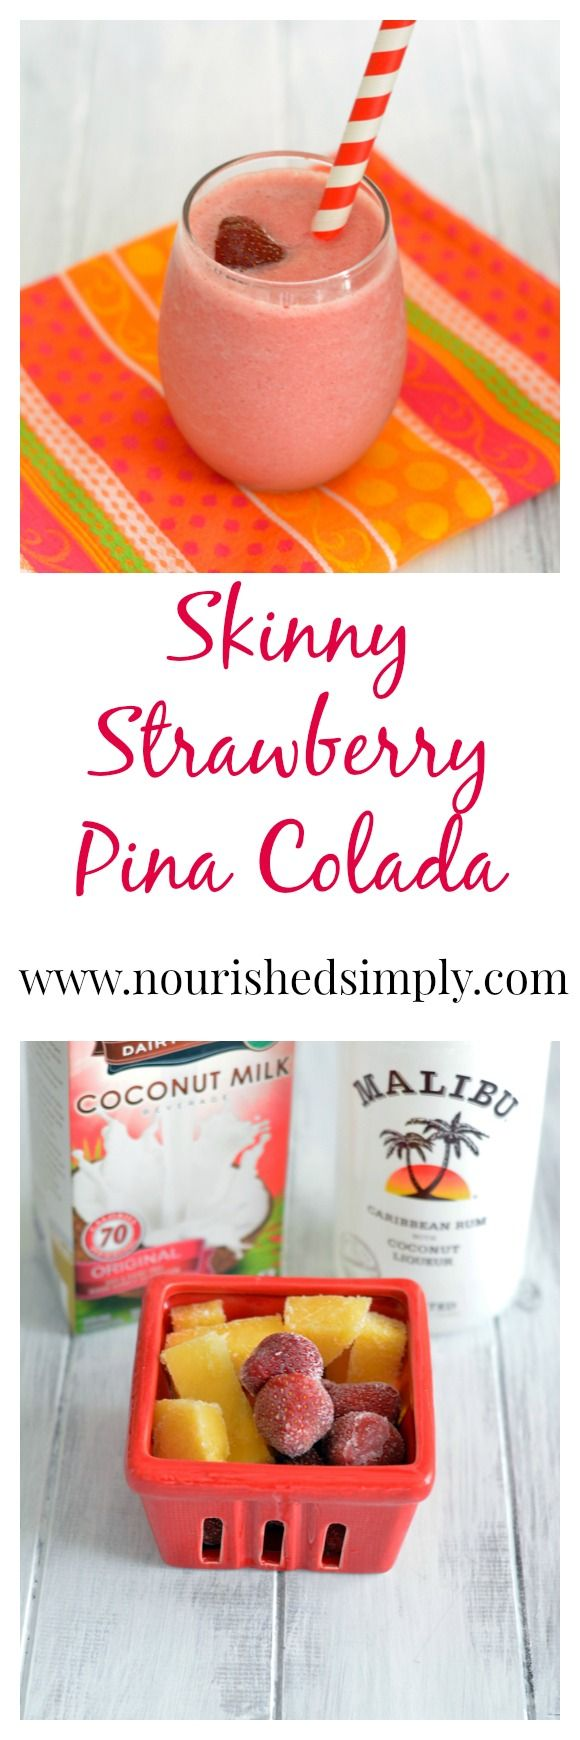 I love low calorie drink recipes in the summer. Skinny Pina Colada - rich in flavor, but lower in calories!